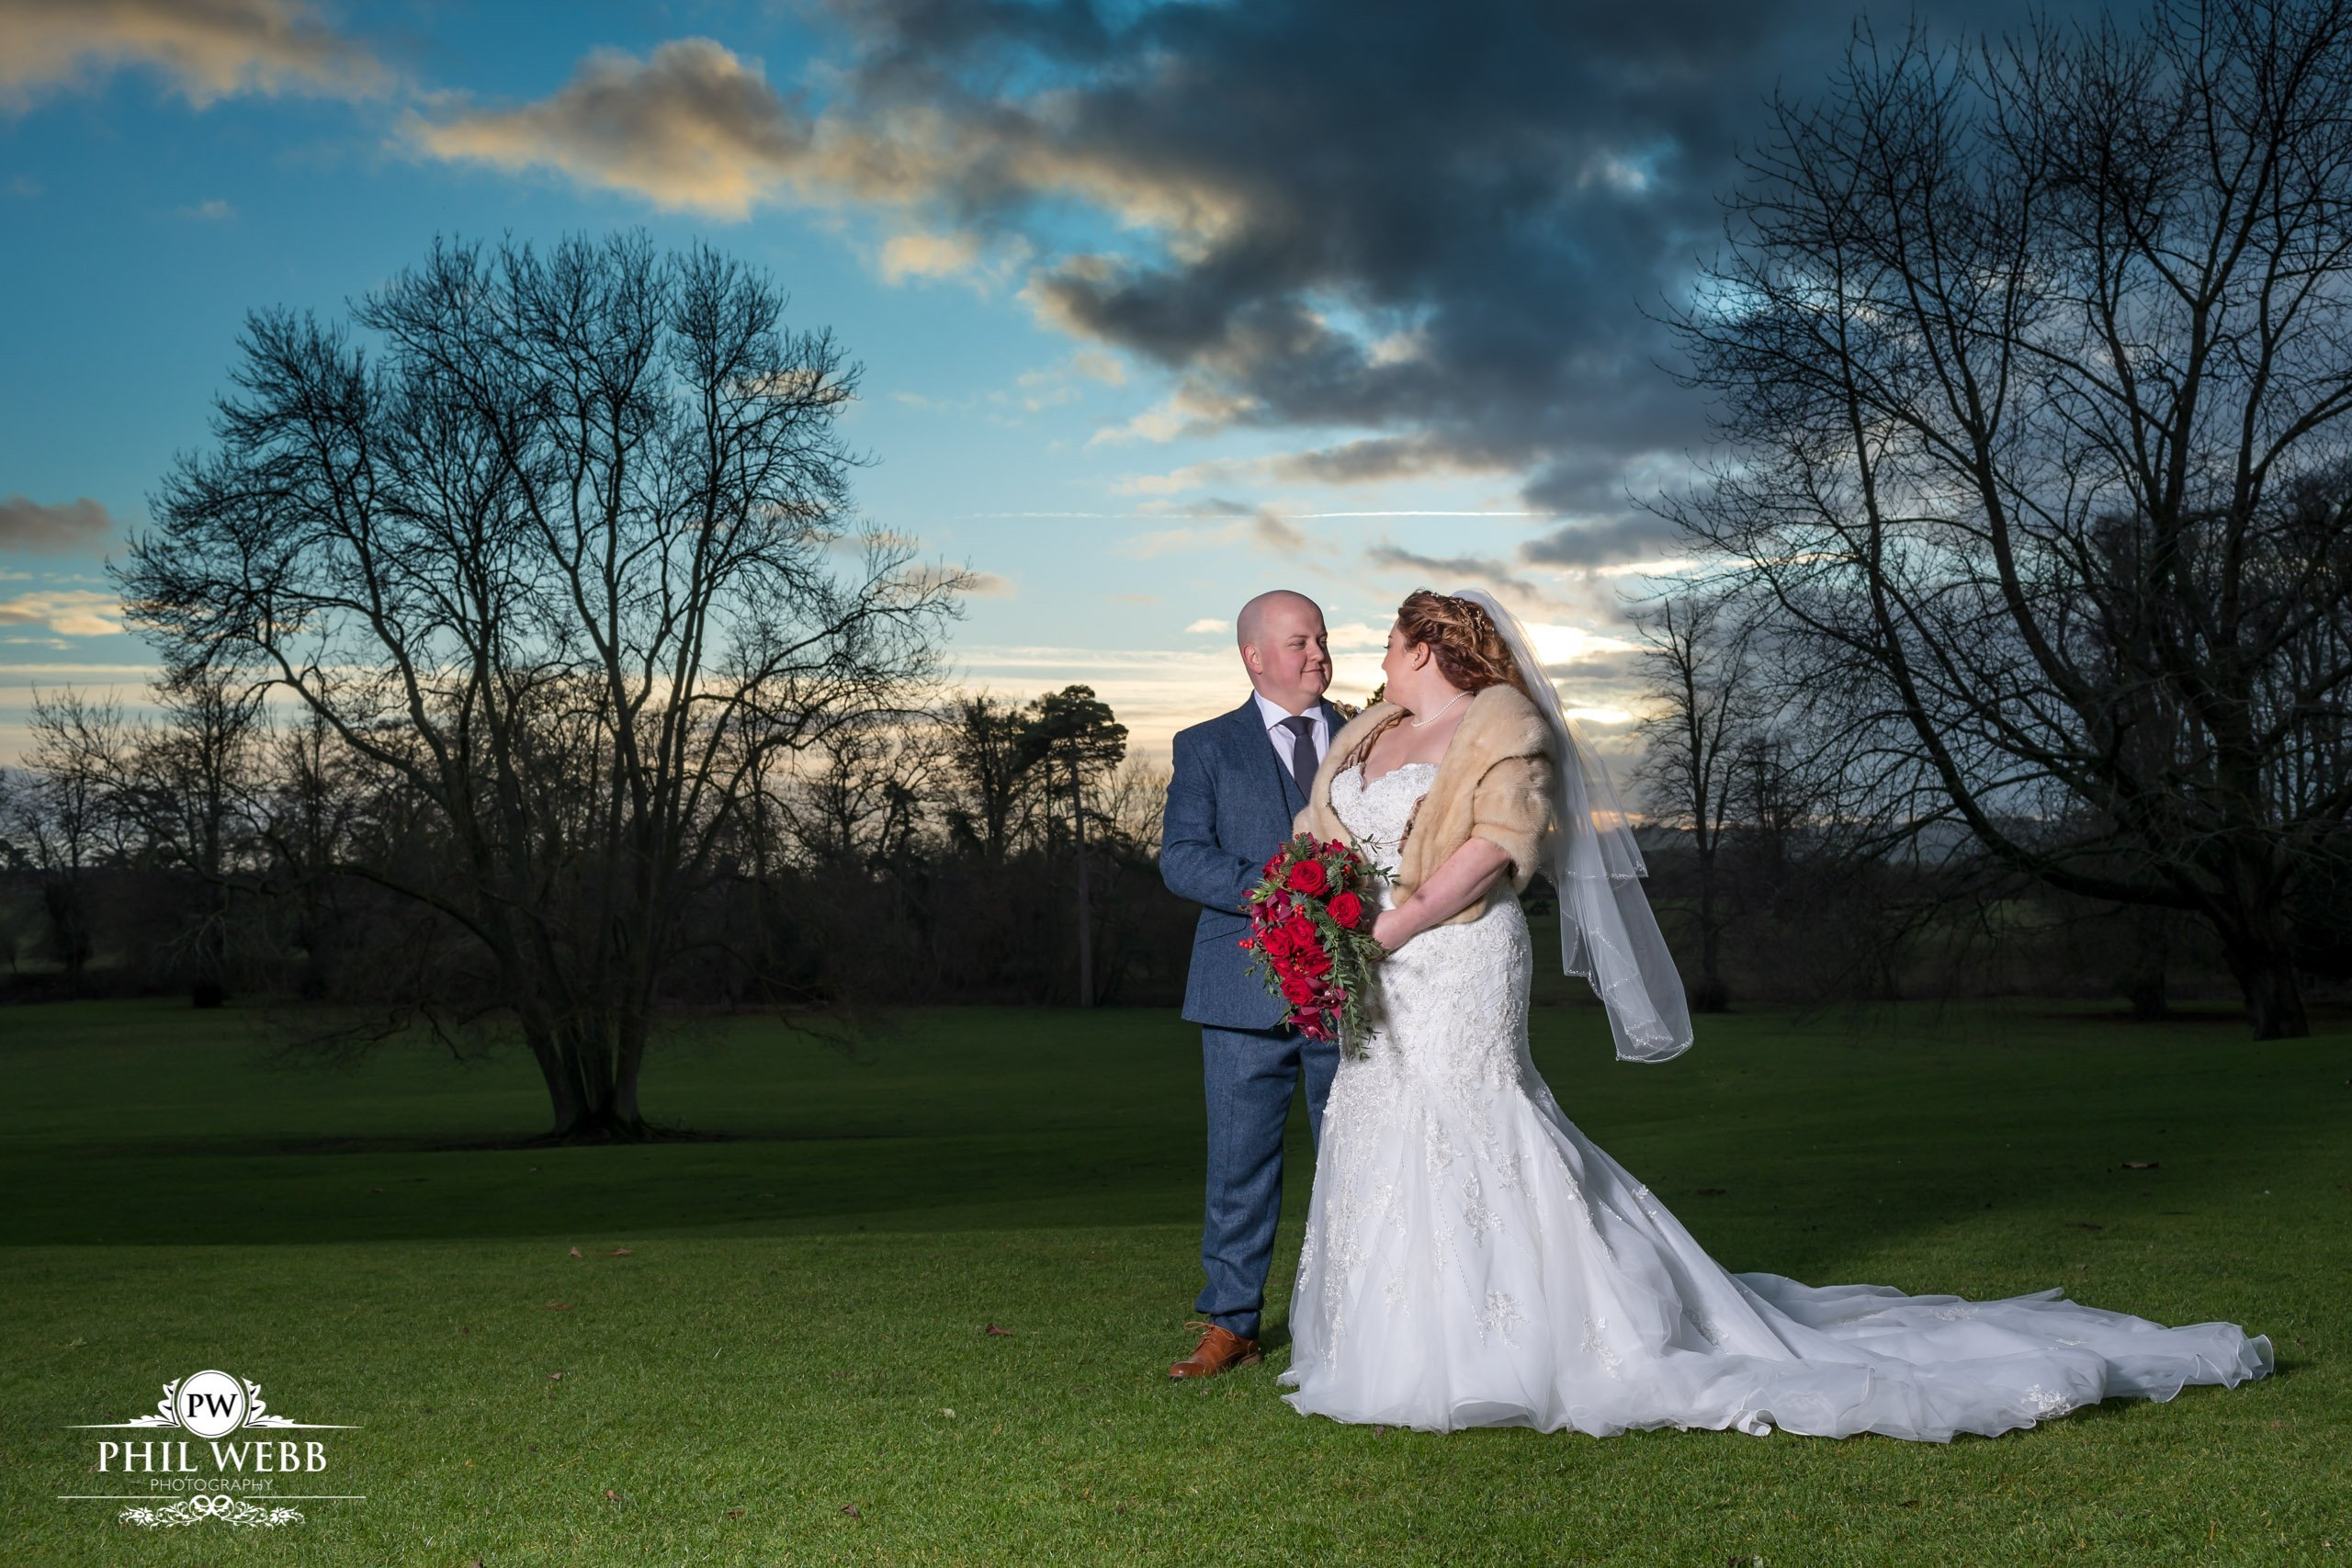 Rachel & James' Wedding - Ettington Park